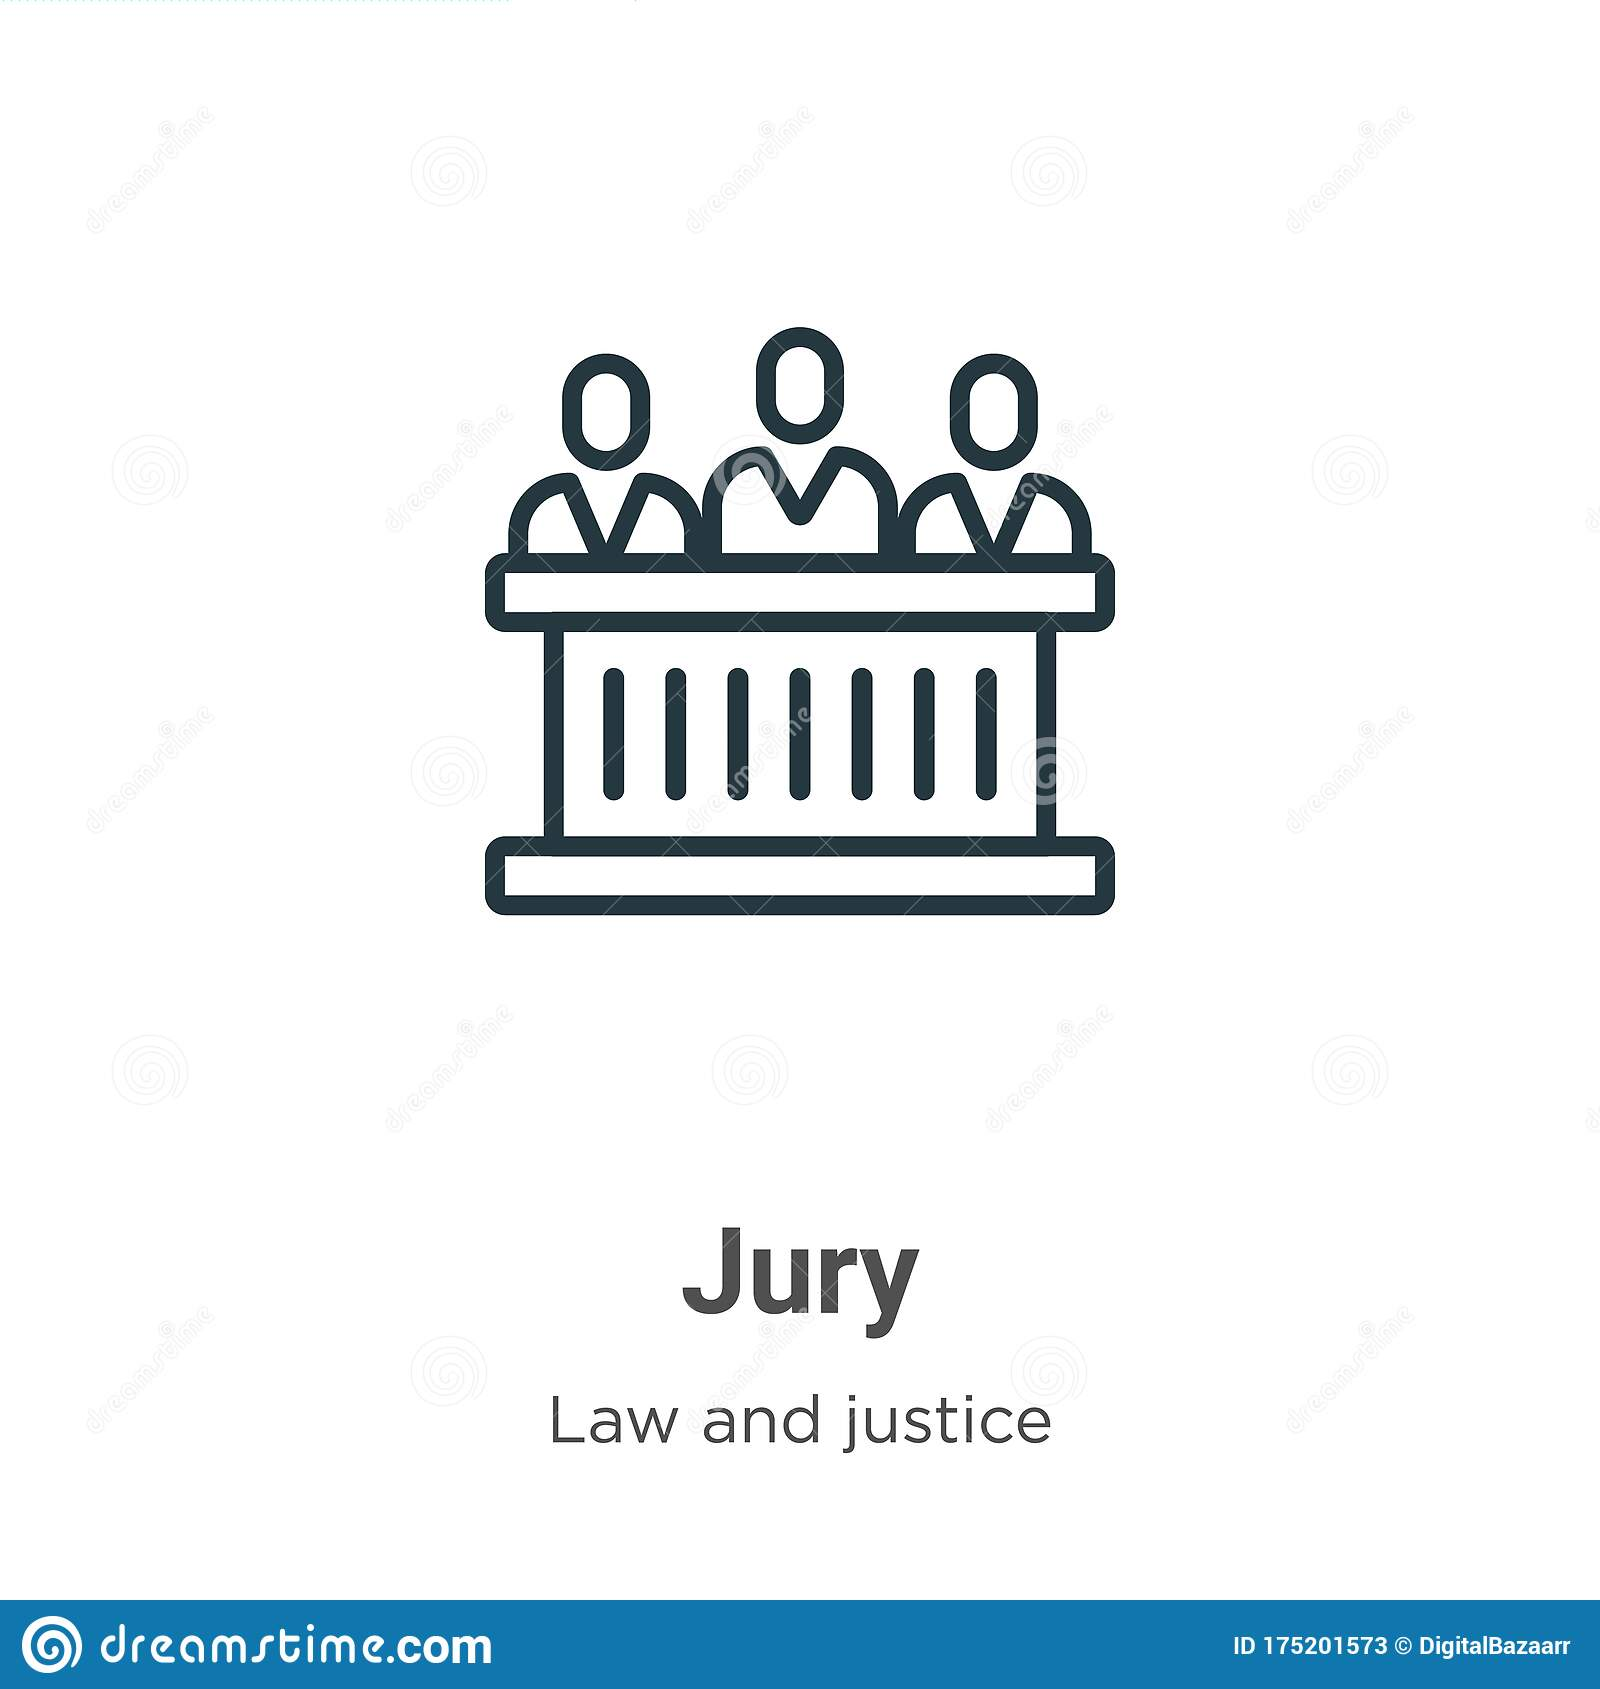 Jury Outline Vector Icon Thin Line Black Jury Icon Flat